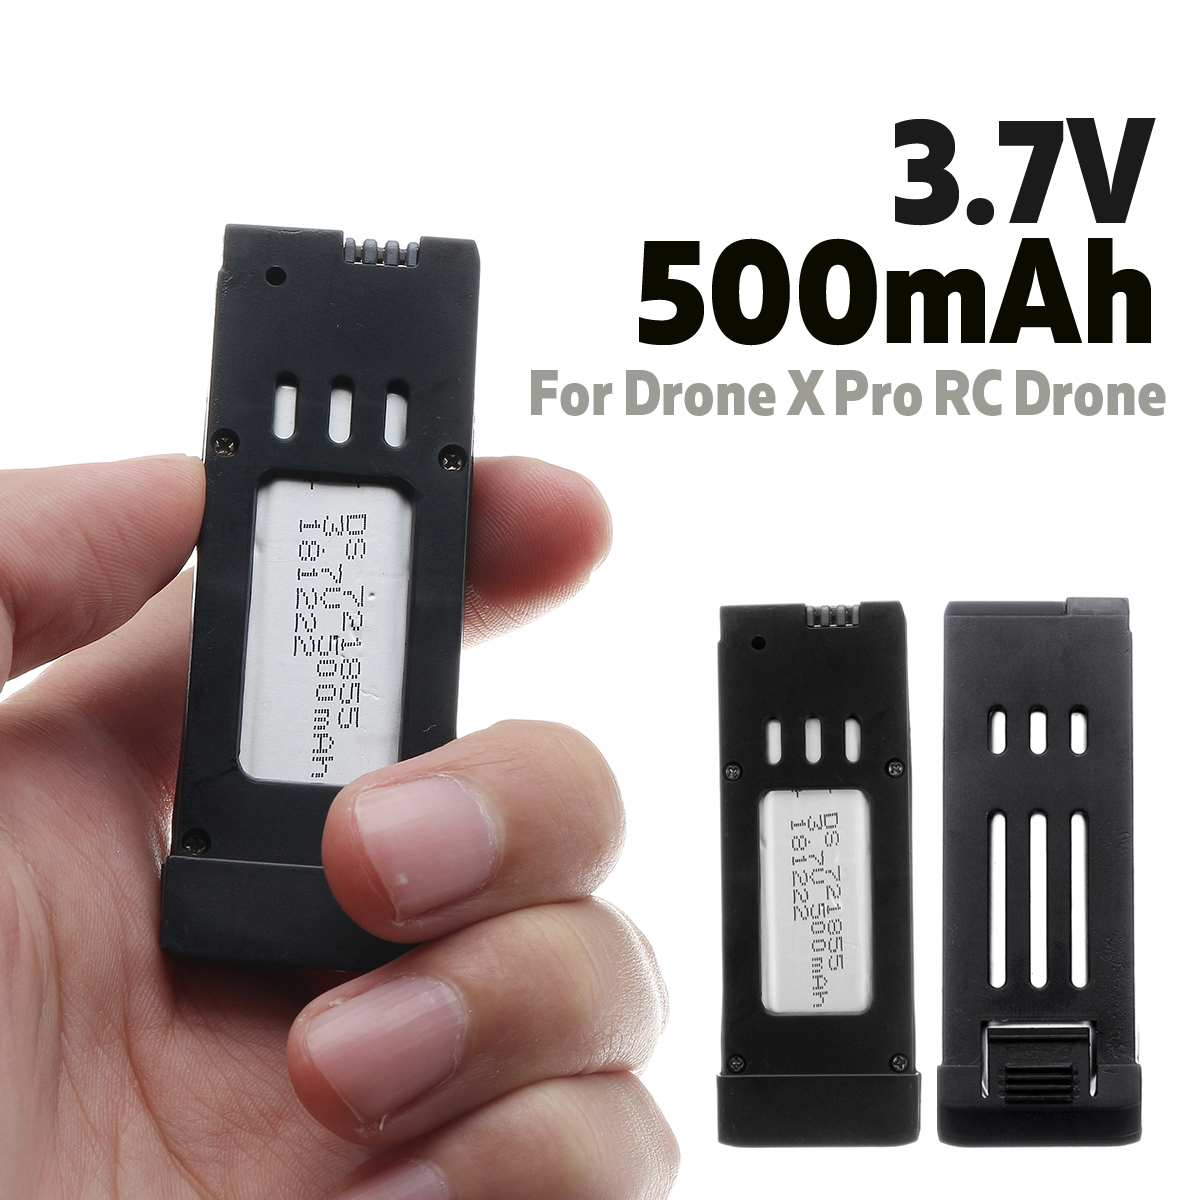 3.7V 500mAh Lipo Battery Rechargeable Replacement Portable Quadcopter Battery Spare Parts for Drone X Pro RC Drone Quadcopter drone x pro